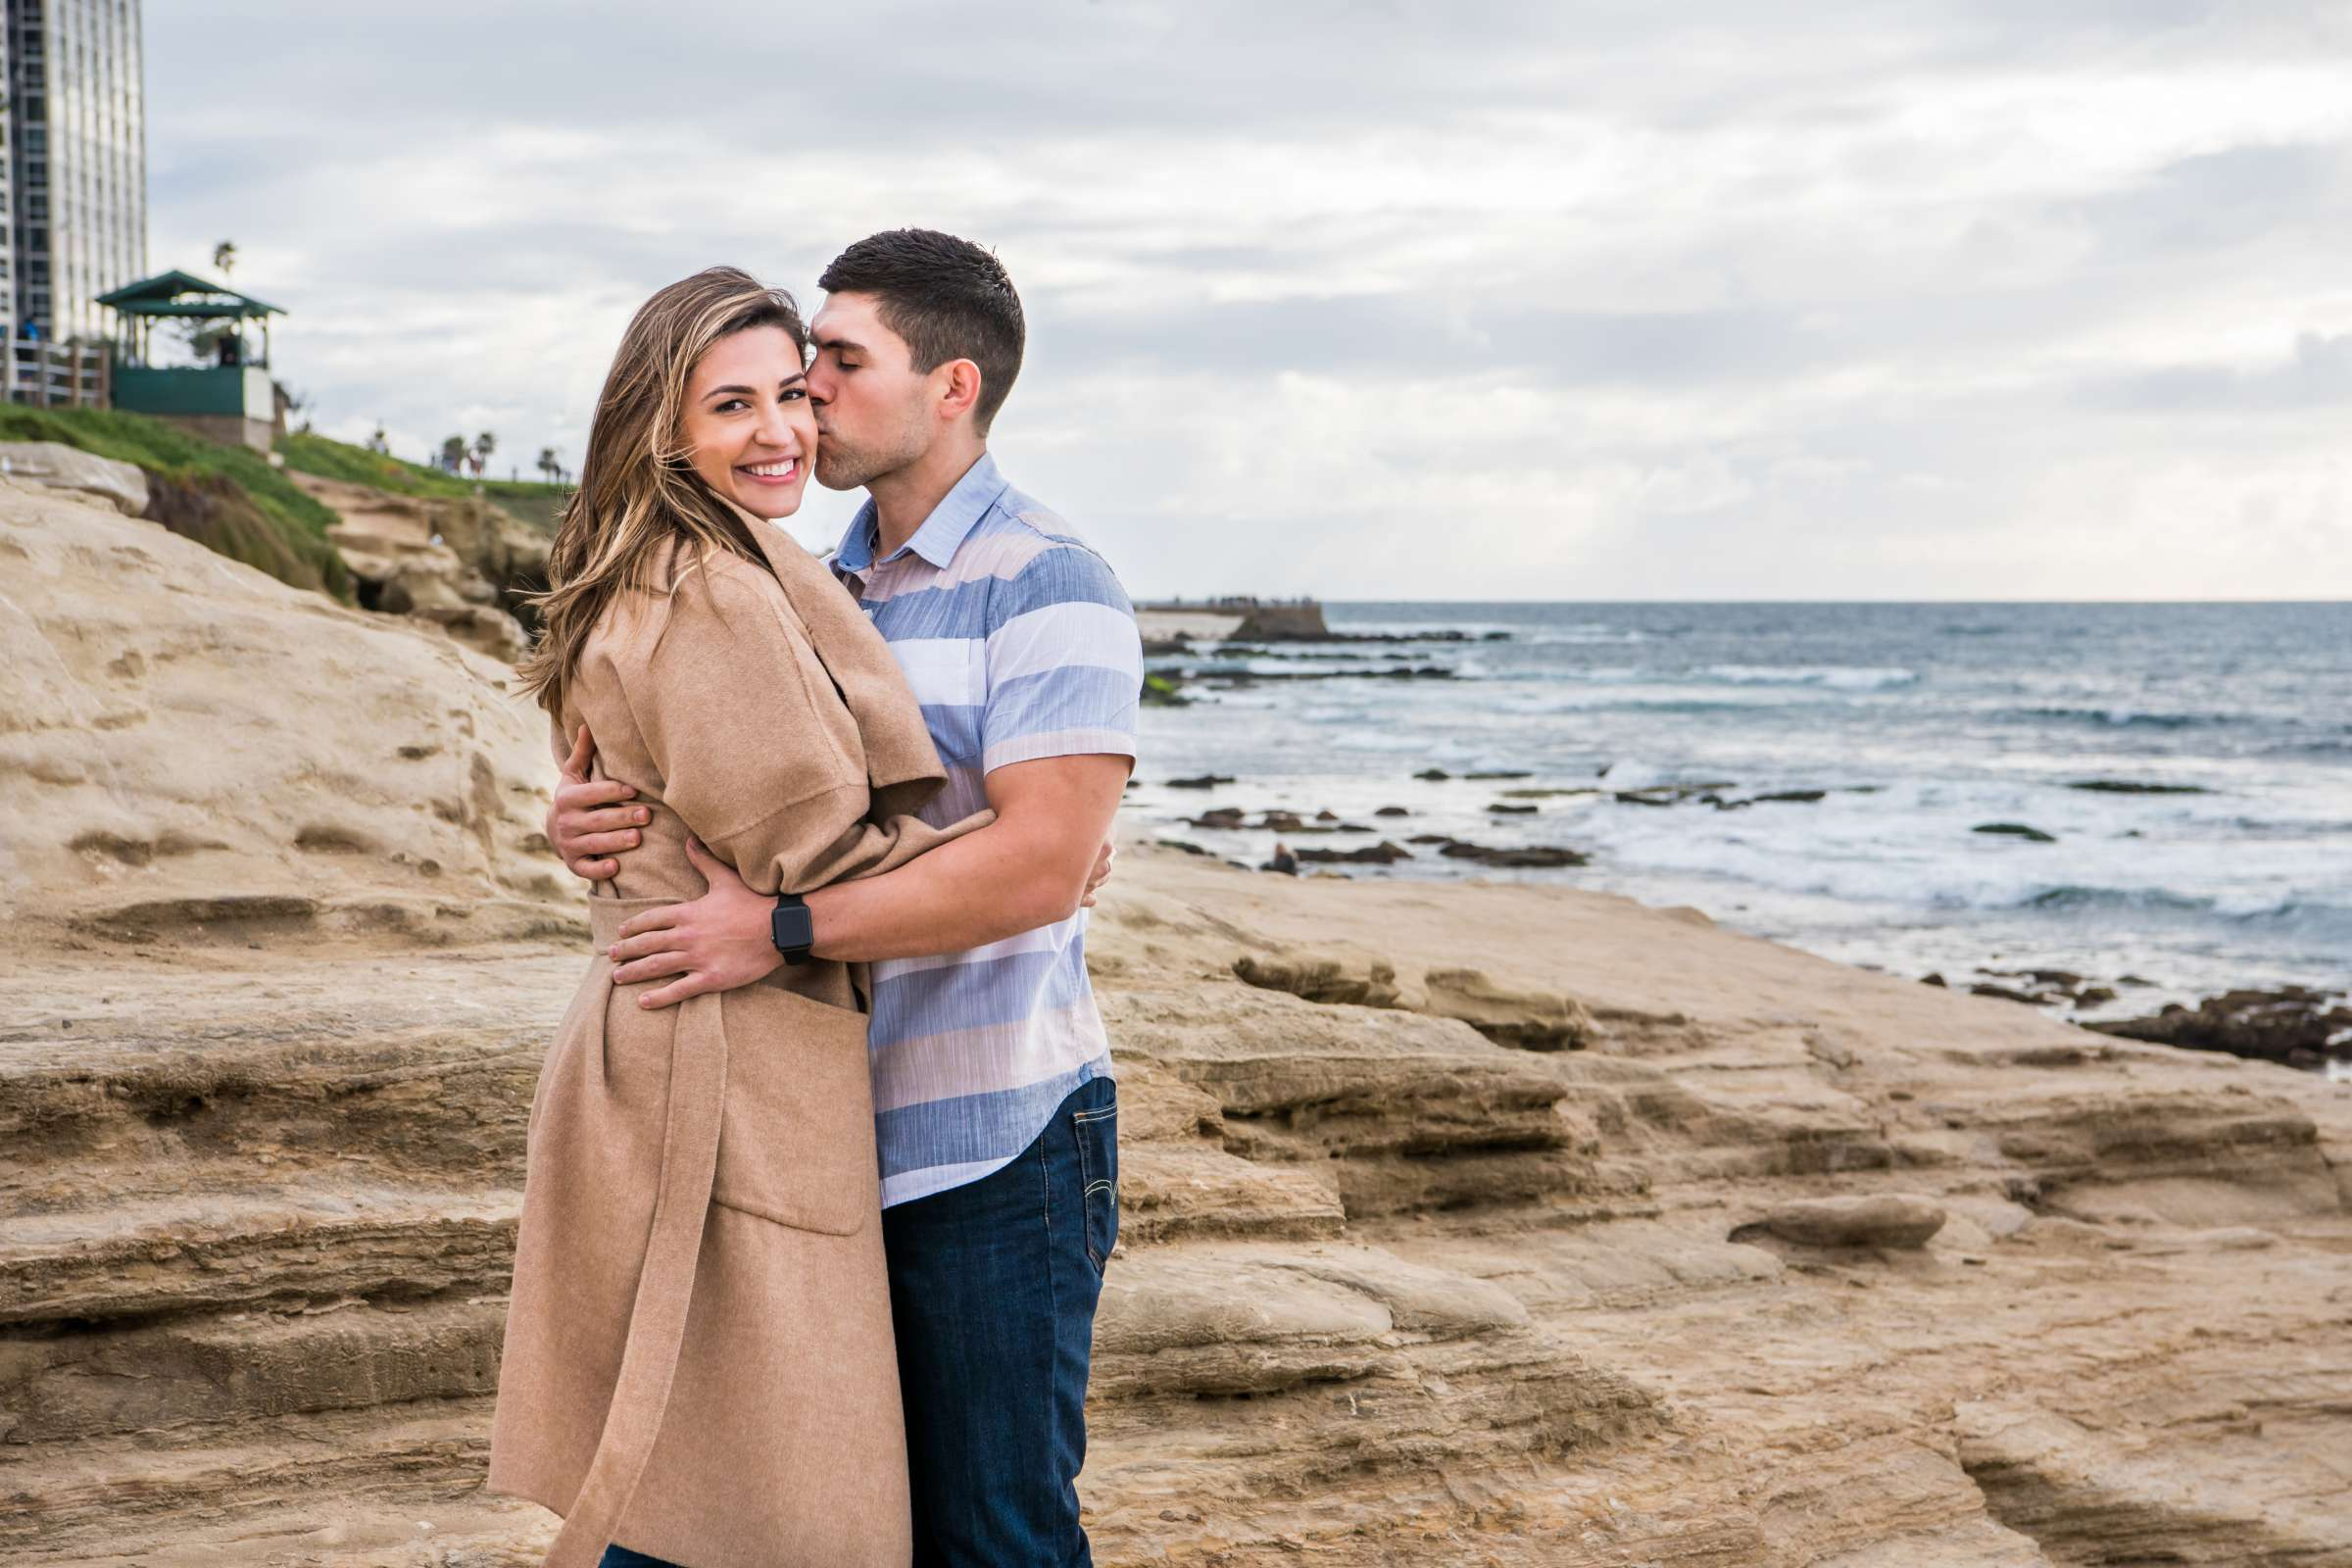 San Diego Courthouse Engagement, Amanda and Stephano Engagement Photo #28 by True Photography